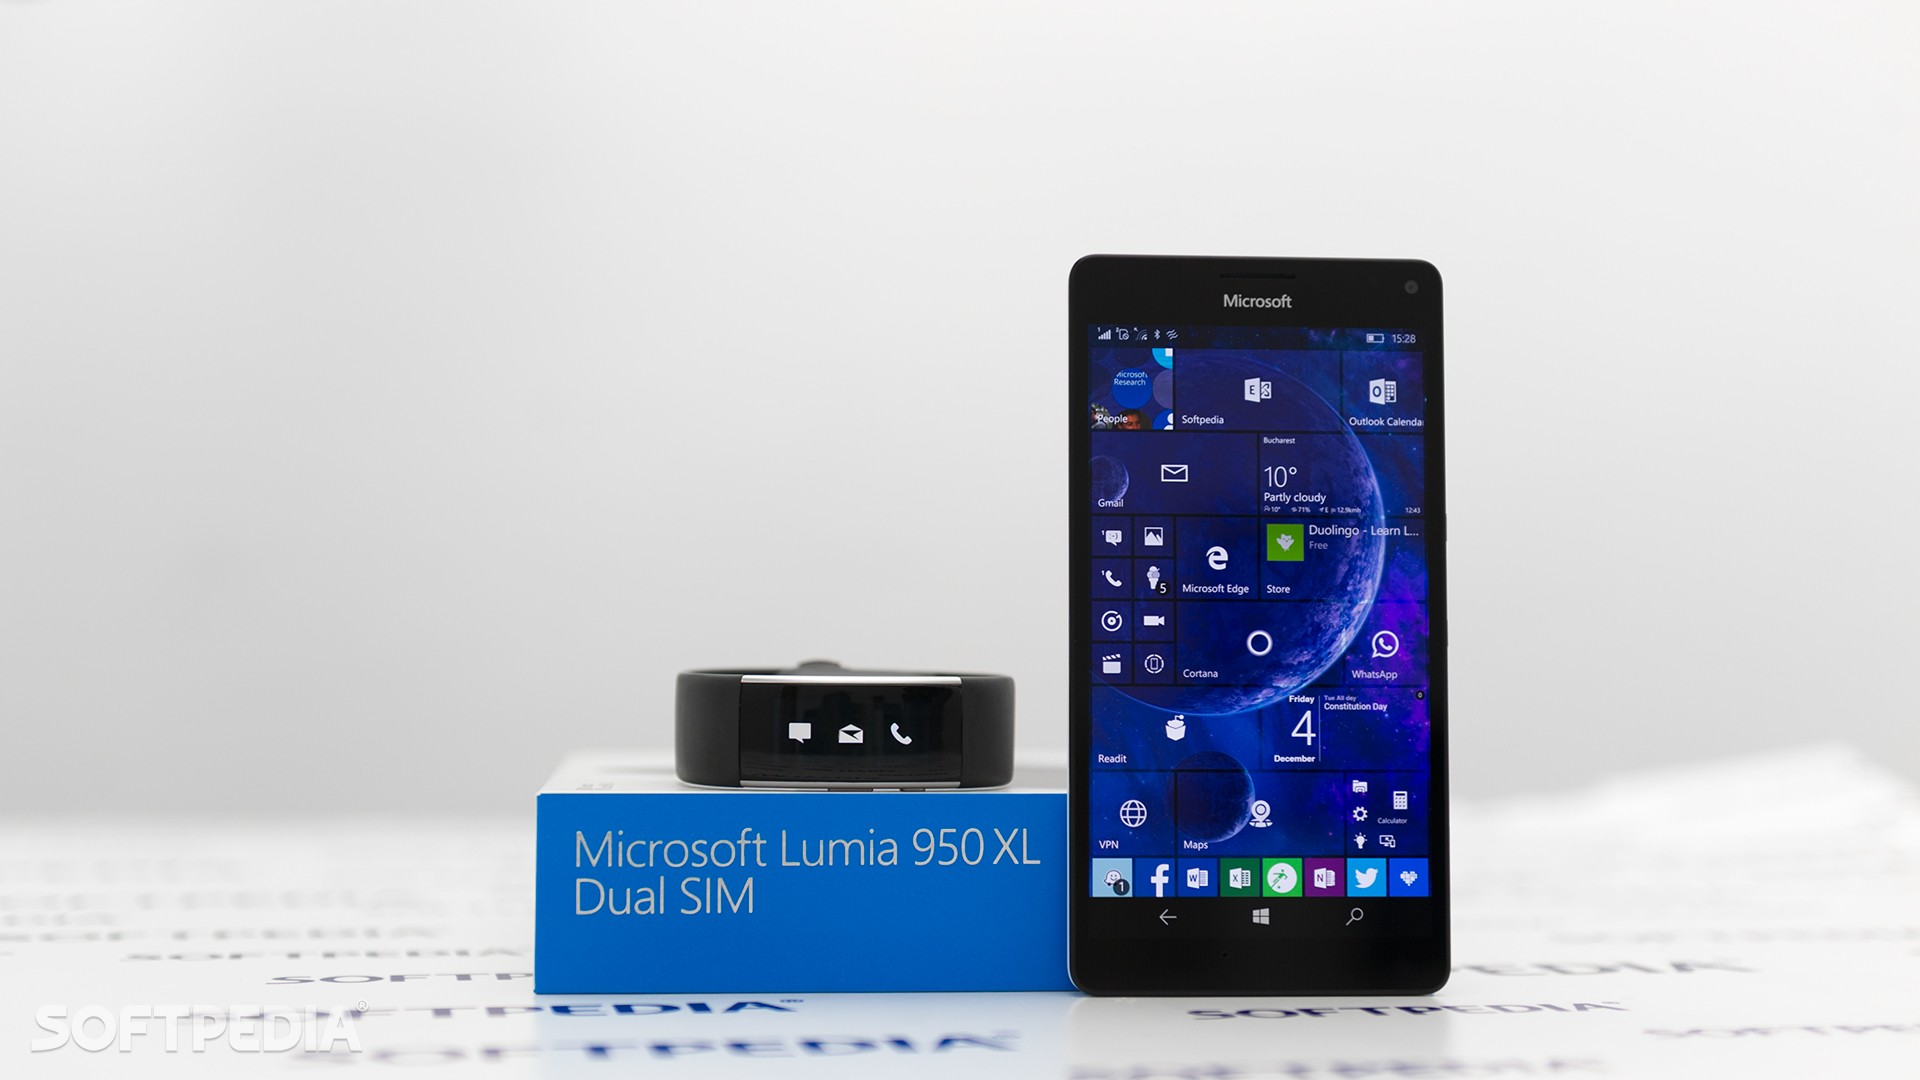 Microsoft Makes Subtle Changes to Windows 10 Mobile Hardware